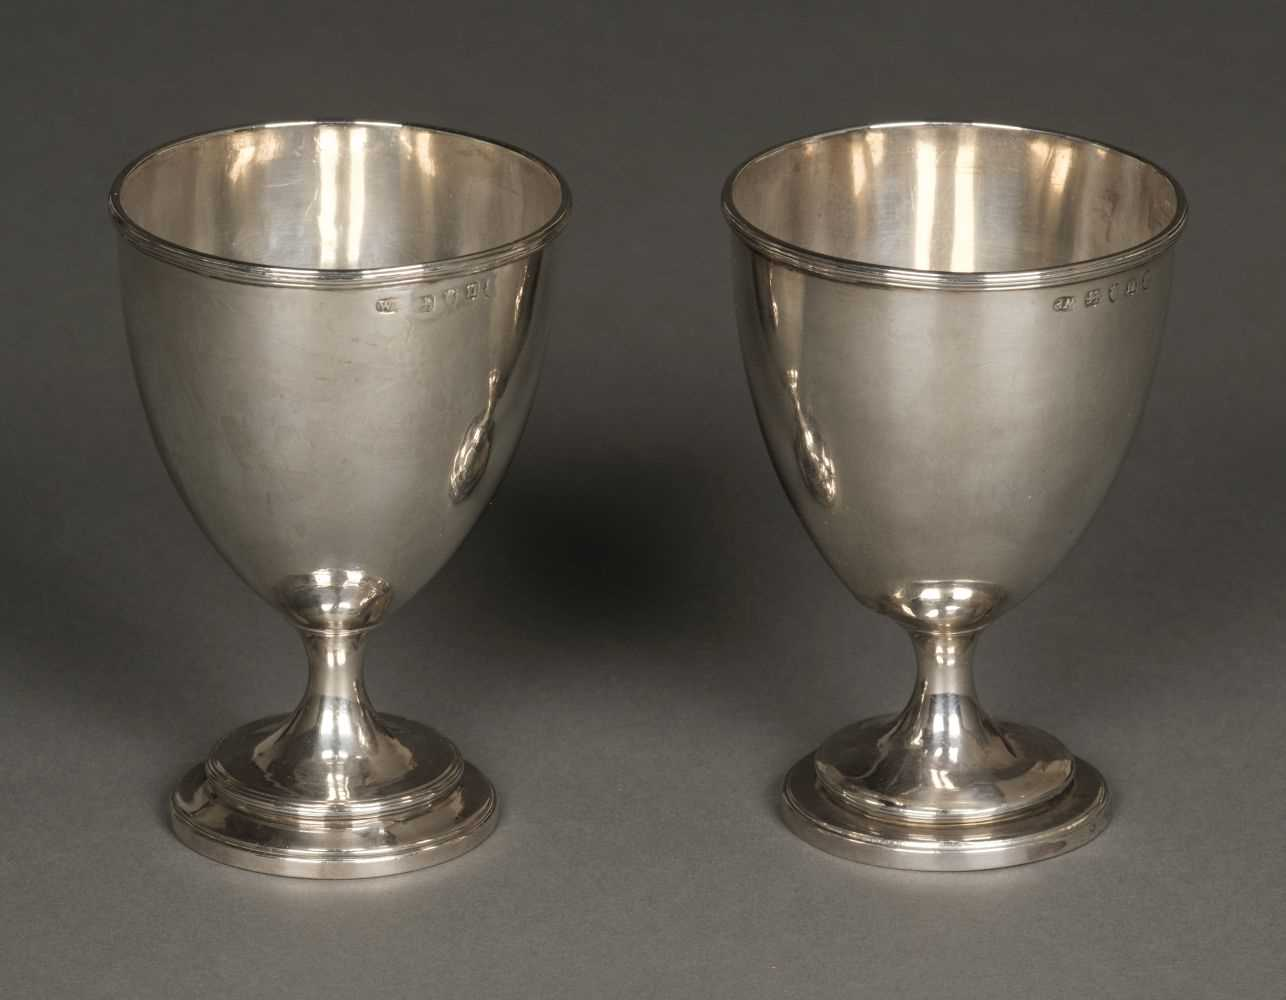 Lot 25 - Goblets. Pair of George III silver goblets by William Pitts, London, 1788